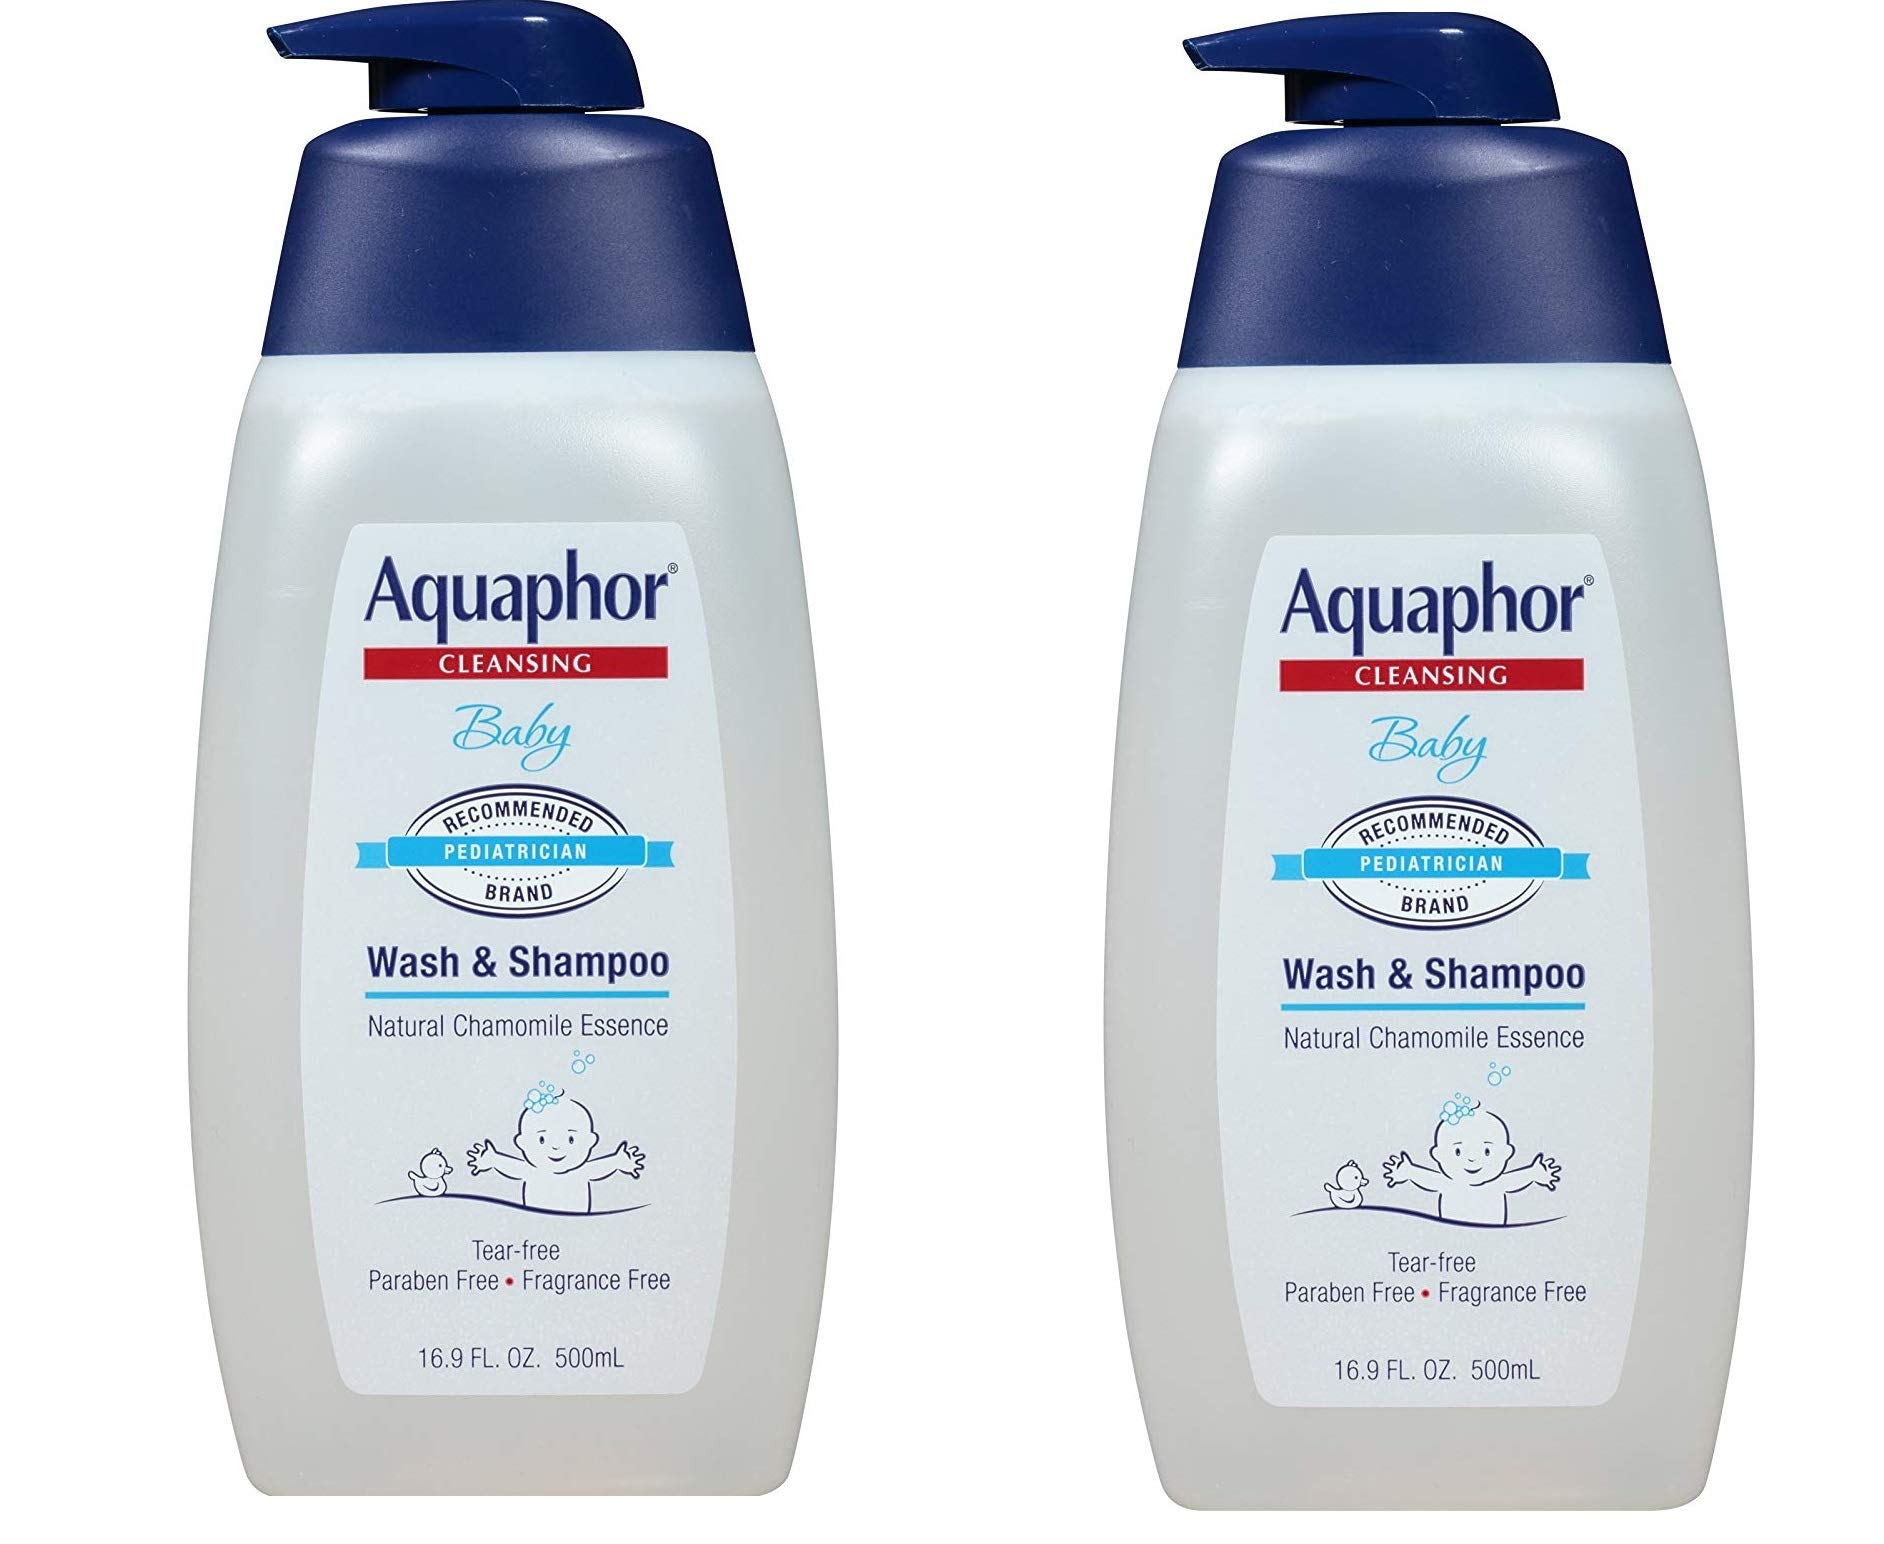 Aquaphor Baby Wash and Shampoo - Mild, Tear-free 2-in-1 Solution for Babyâ€s Sensitive Skin - 16.9 fl. oz. Pump, 2 Pack by Aquaphor